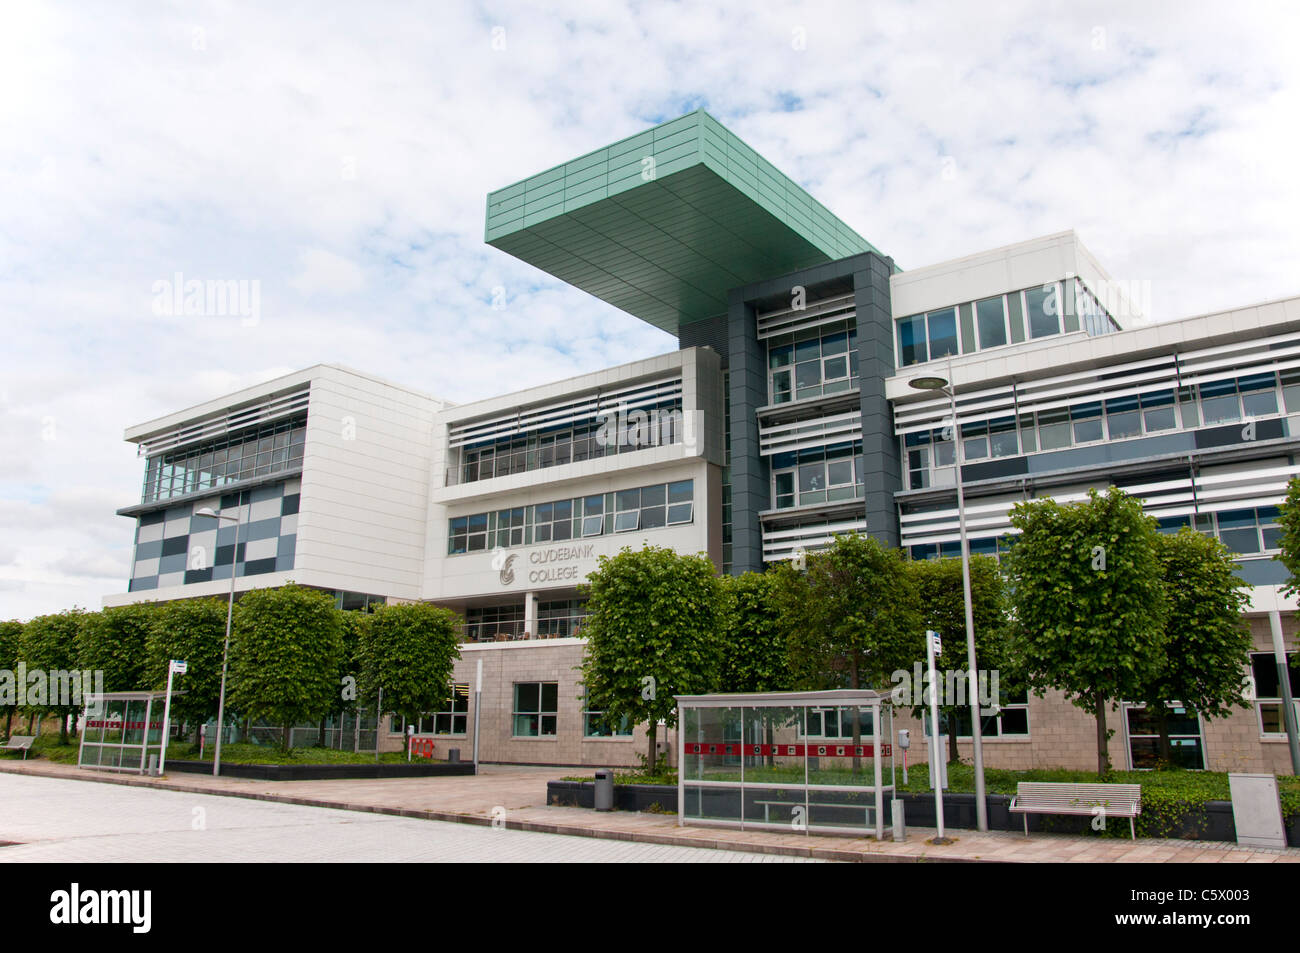 Clydebank College is a further education college in Clydebank west of Glasgow. - Stock Image